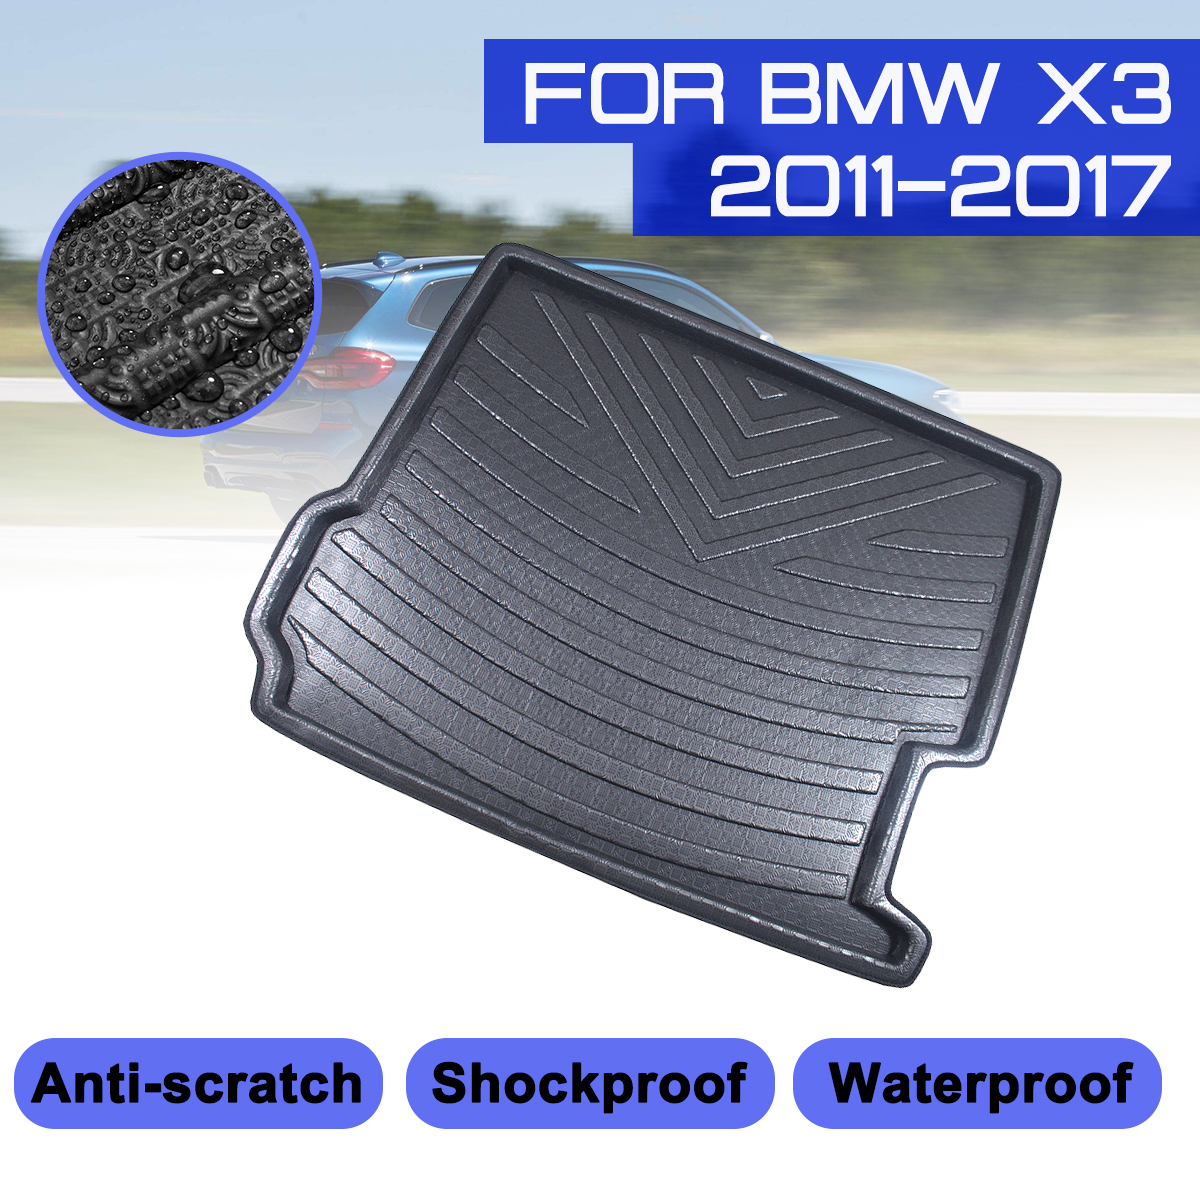 For BMW X3 2011 2012 2013 2014 2015 2016 2017 Car Rear Trunk Boot Mat Waterproof Floor Mats Carpet Anti Mud Tray Cargo Liner